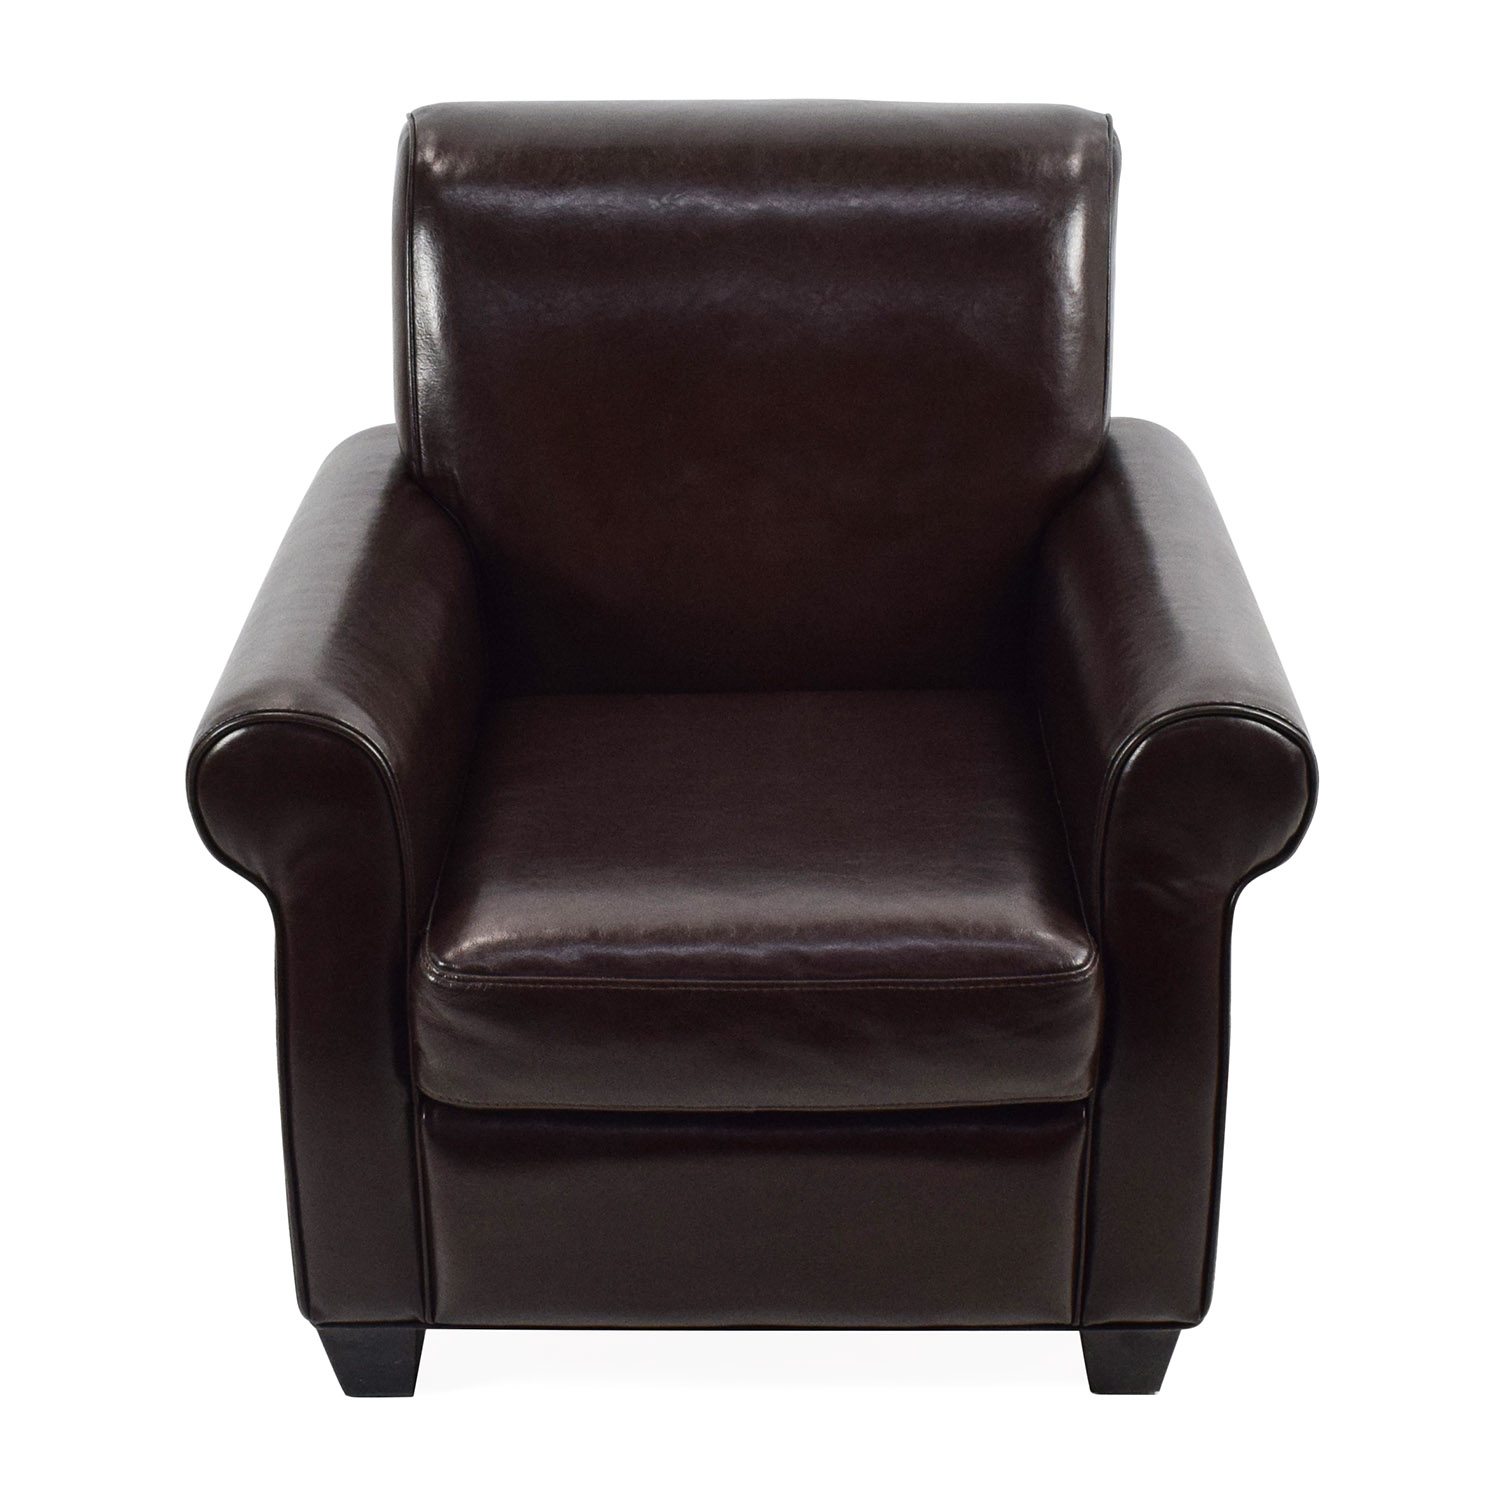 65 off door store door store dark brown leather for Armchair furniture